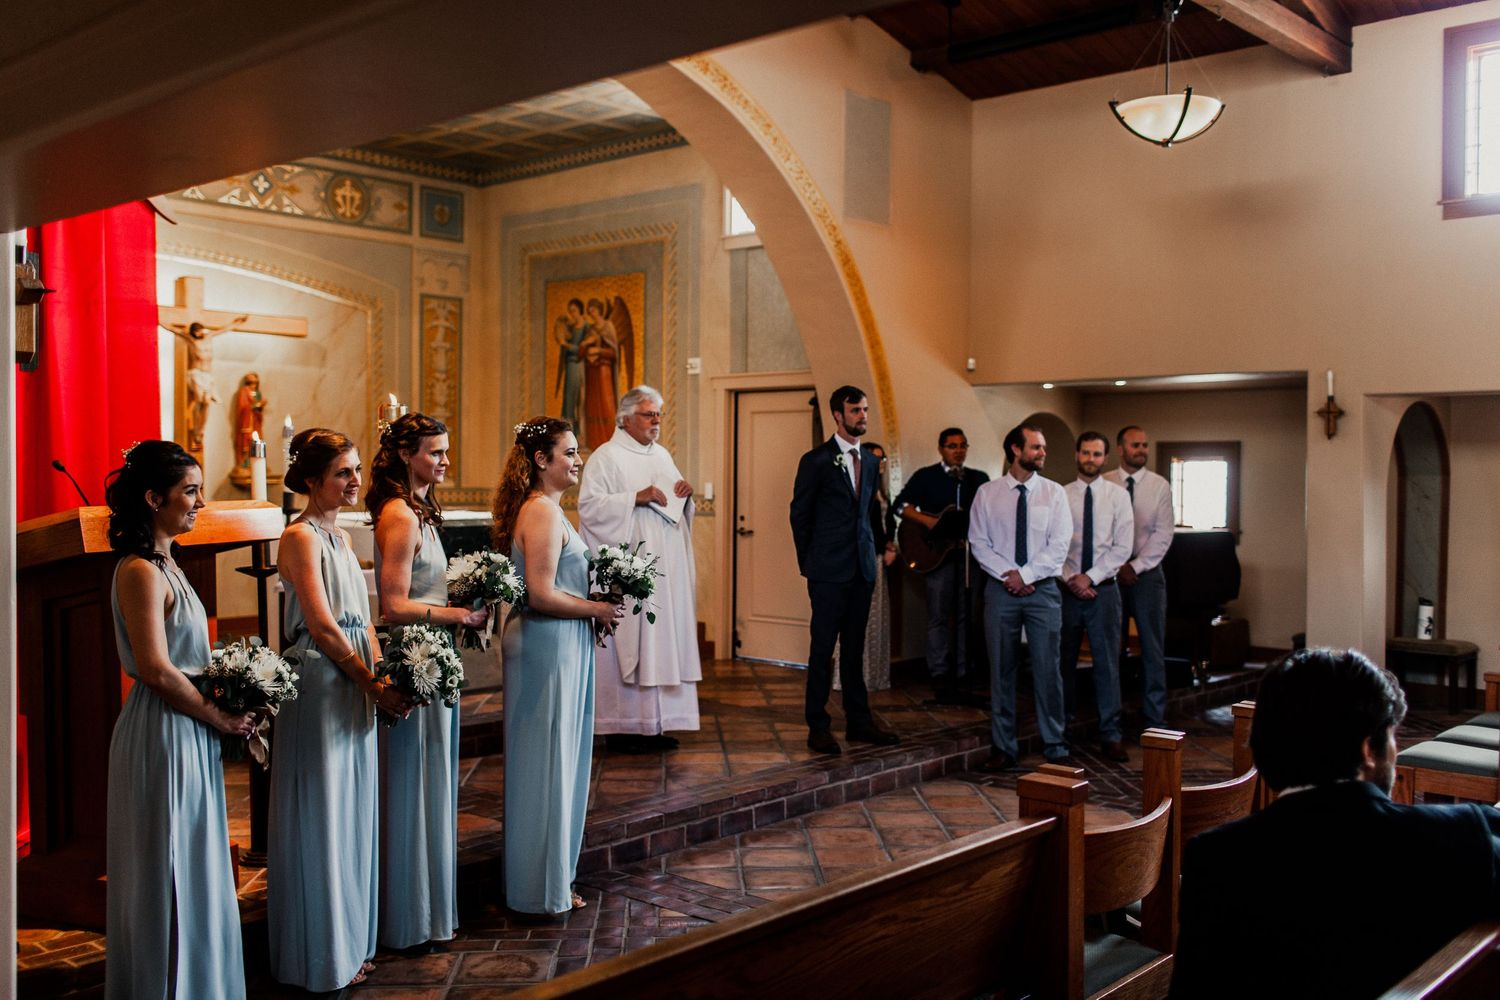 Wedding party inside St Francis Catholic Church